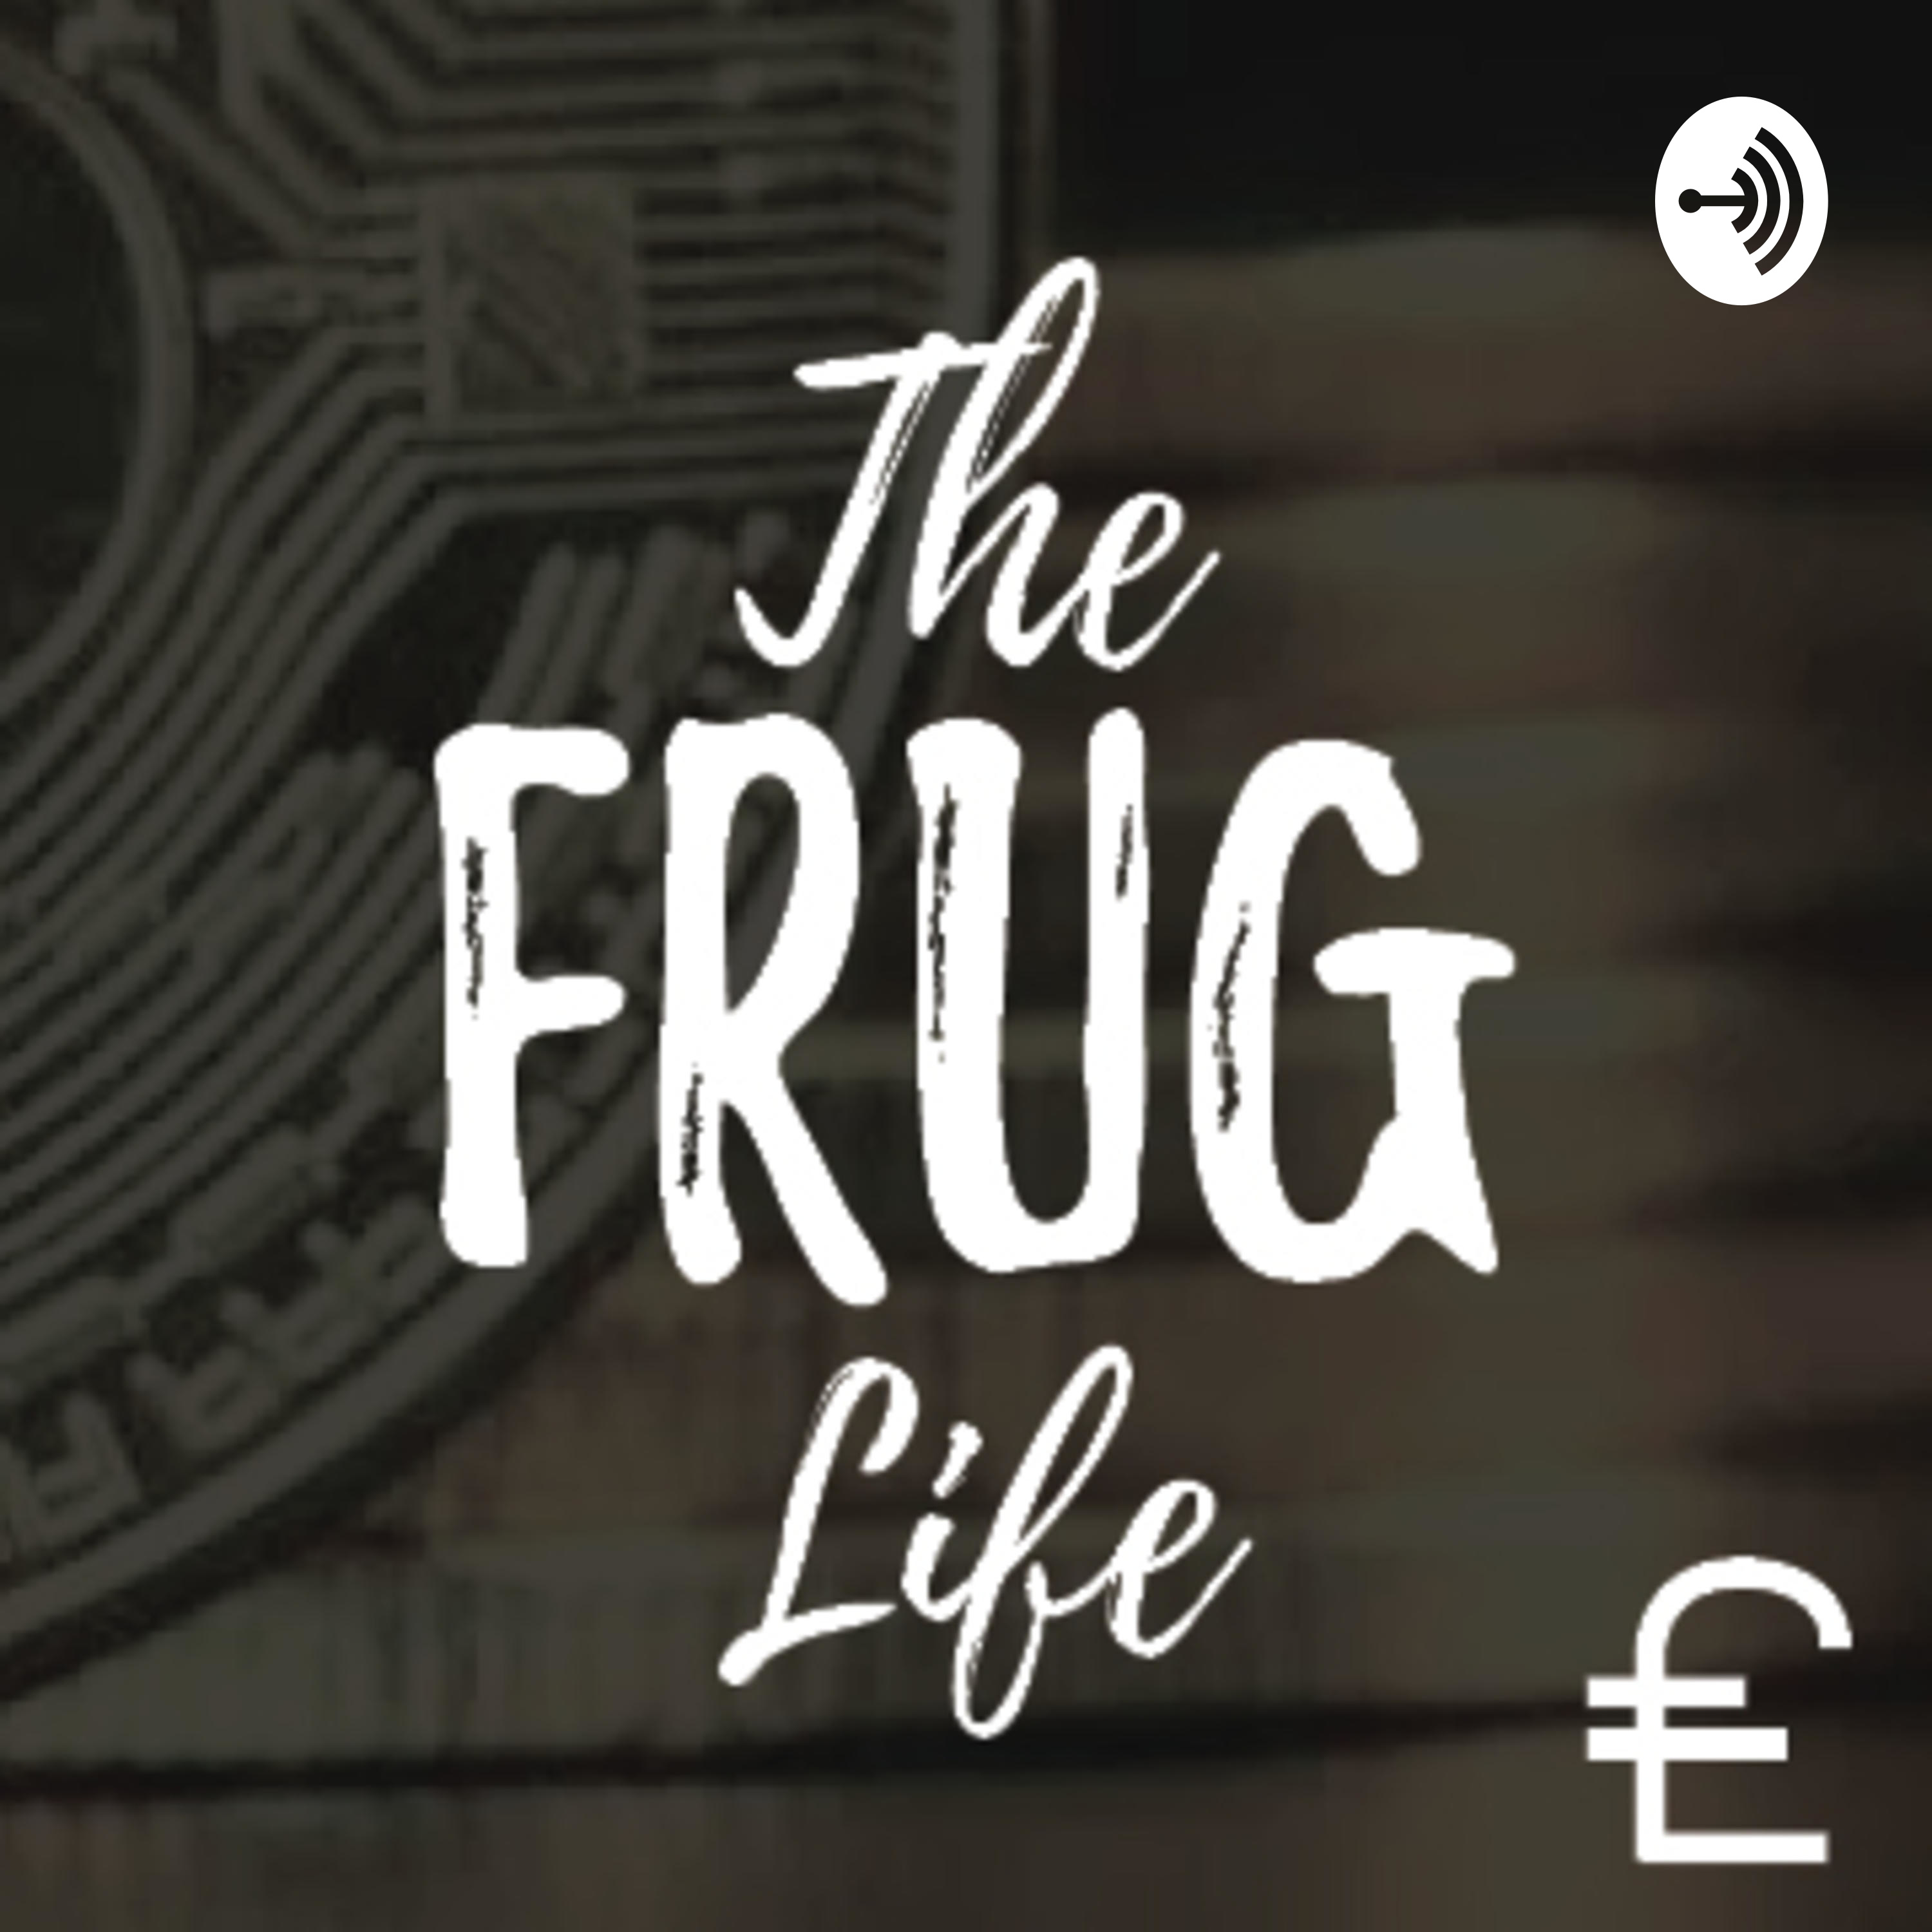 Welcome to the Frug Life